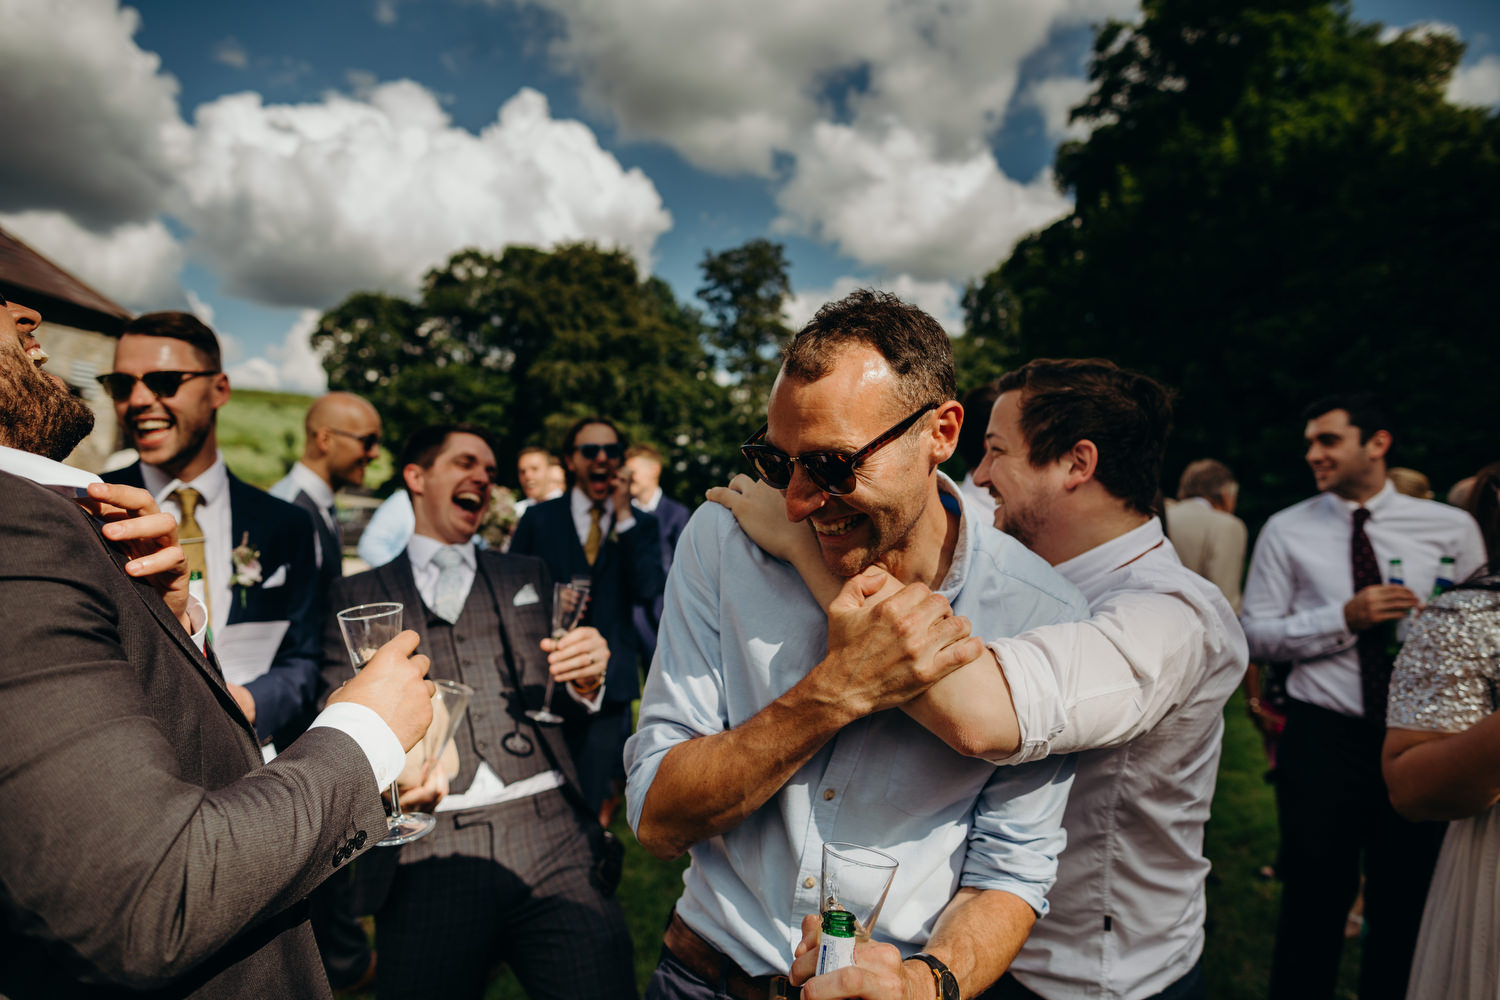 laughing guys embrace at wedding